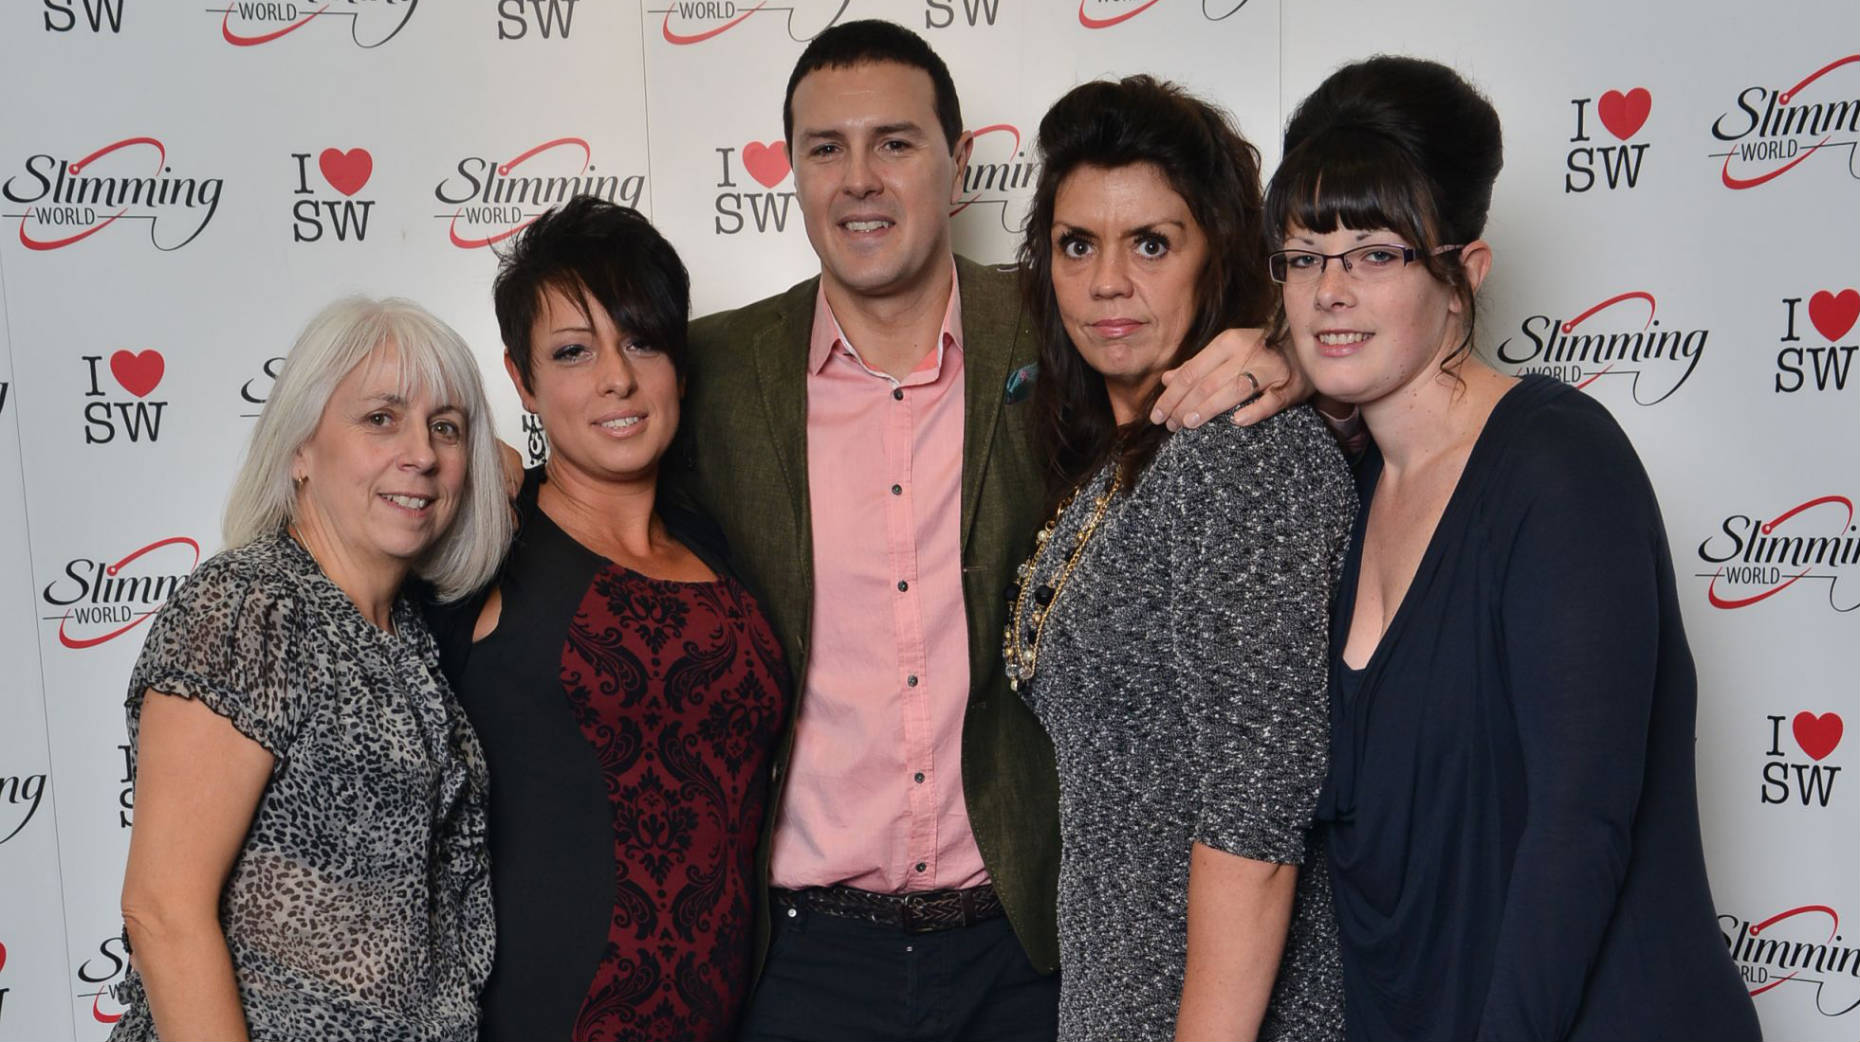 Lincoln Slimmers 39 Taken Out 39 By Paddy Mcguiness